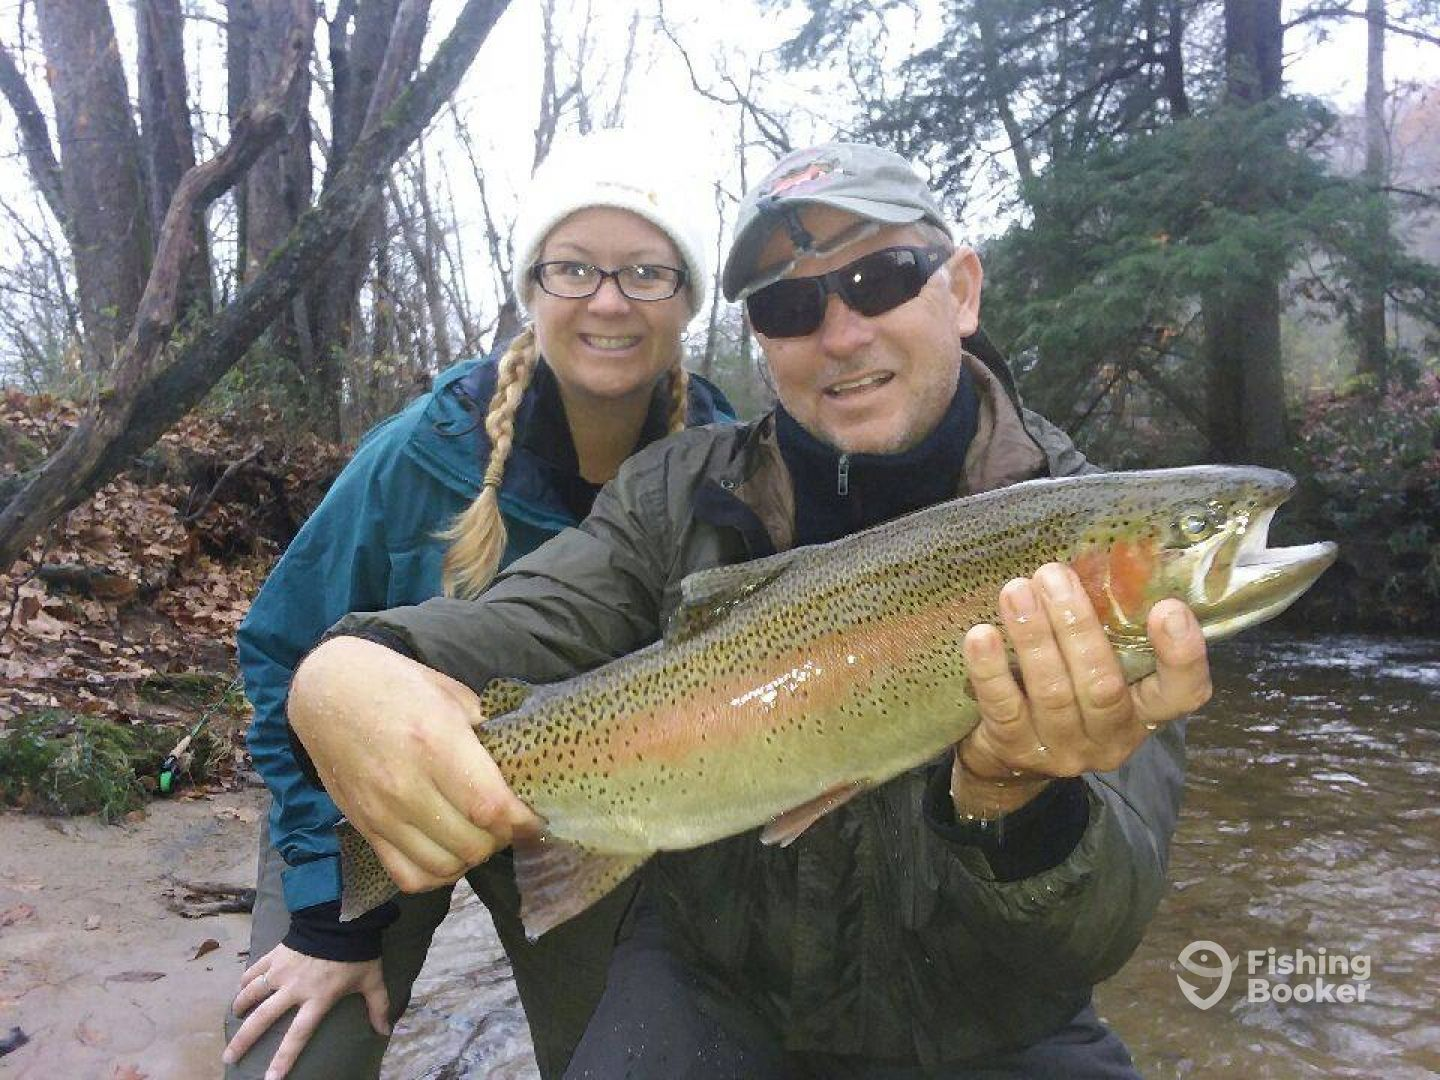 I just found Trophy Trout Fly Fishing on FishingBooker